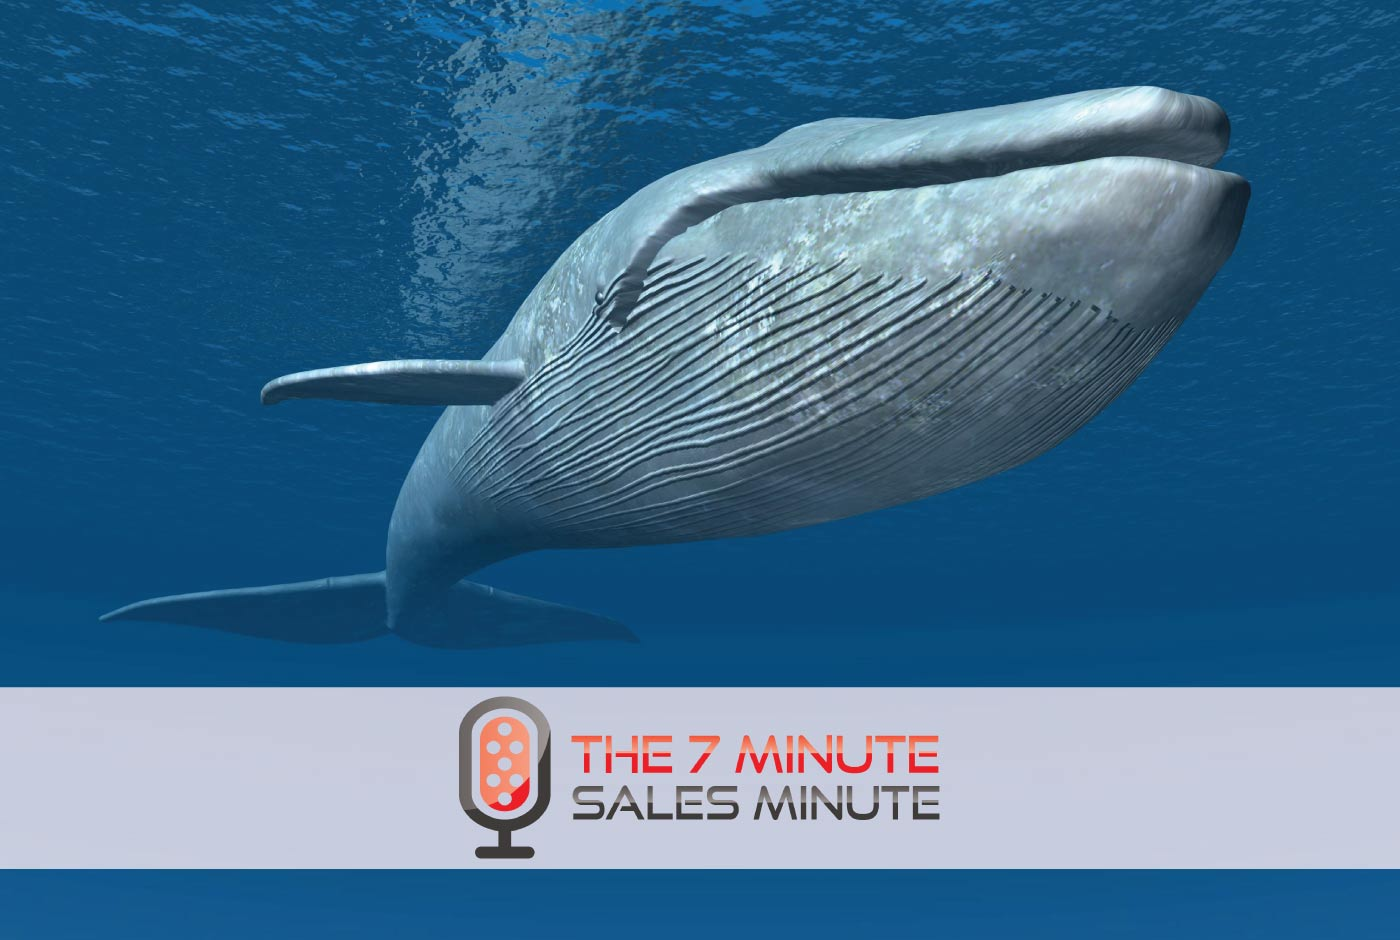 7 Minute Sales Minute Podcast - Season 13 - Episode 15 - No Moby Dicks - photo of whale